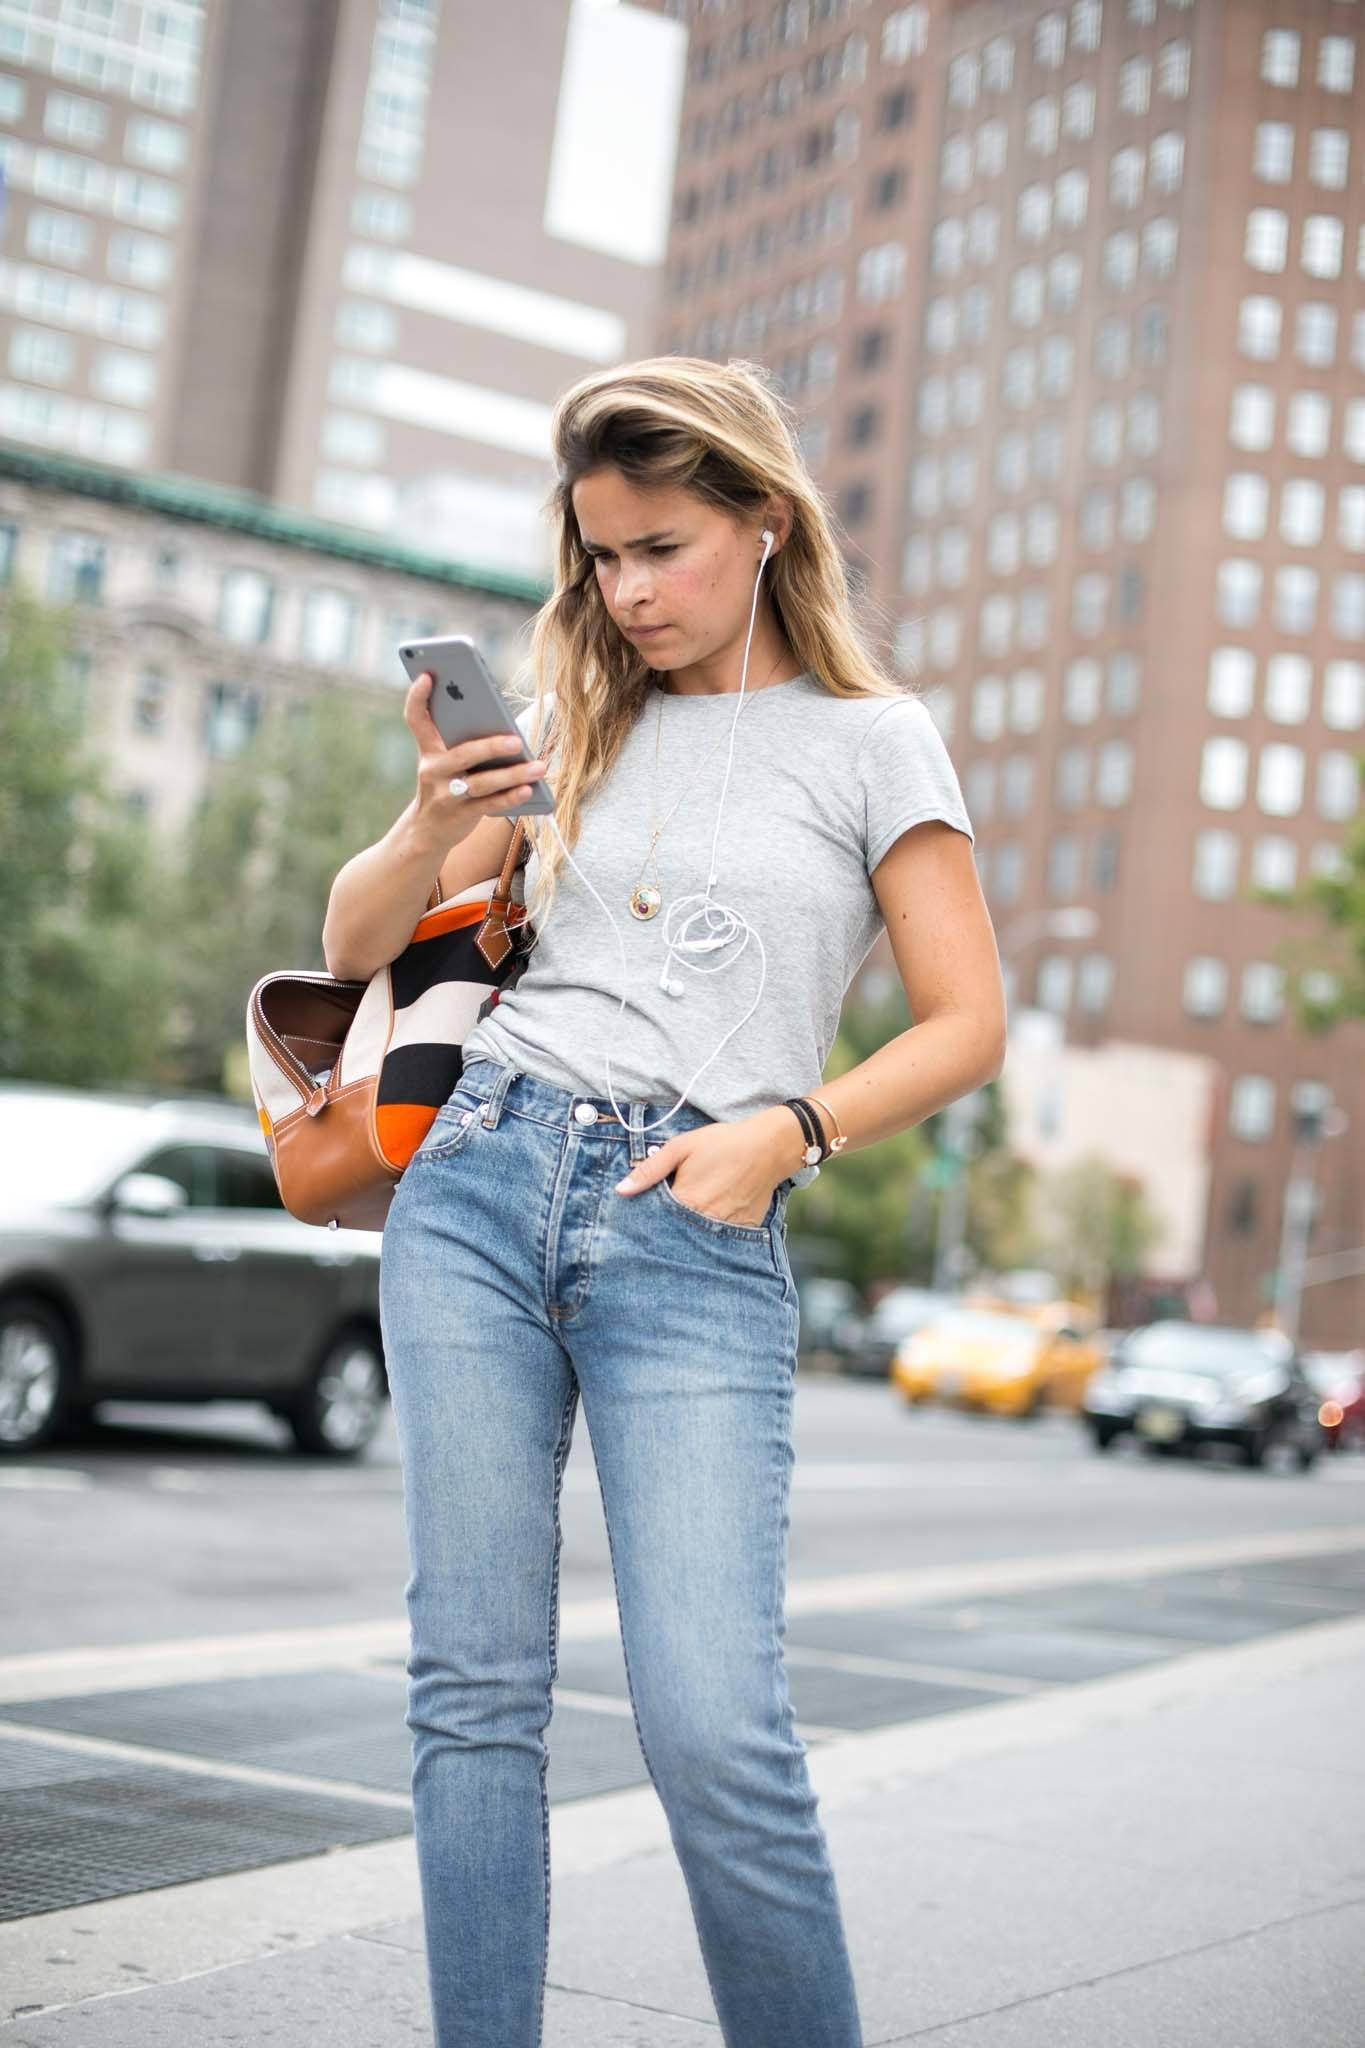 young woman with long hair searching on cell phone for best hair care buys